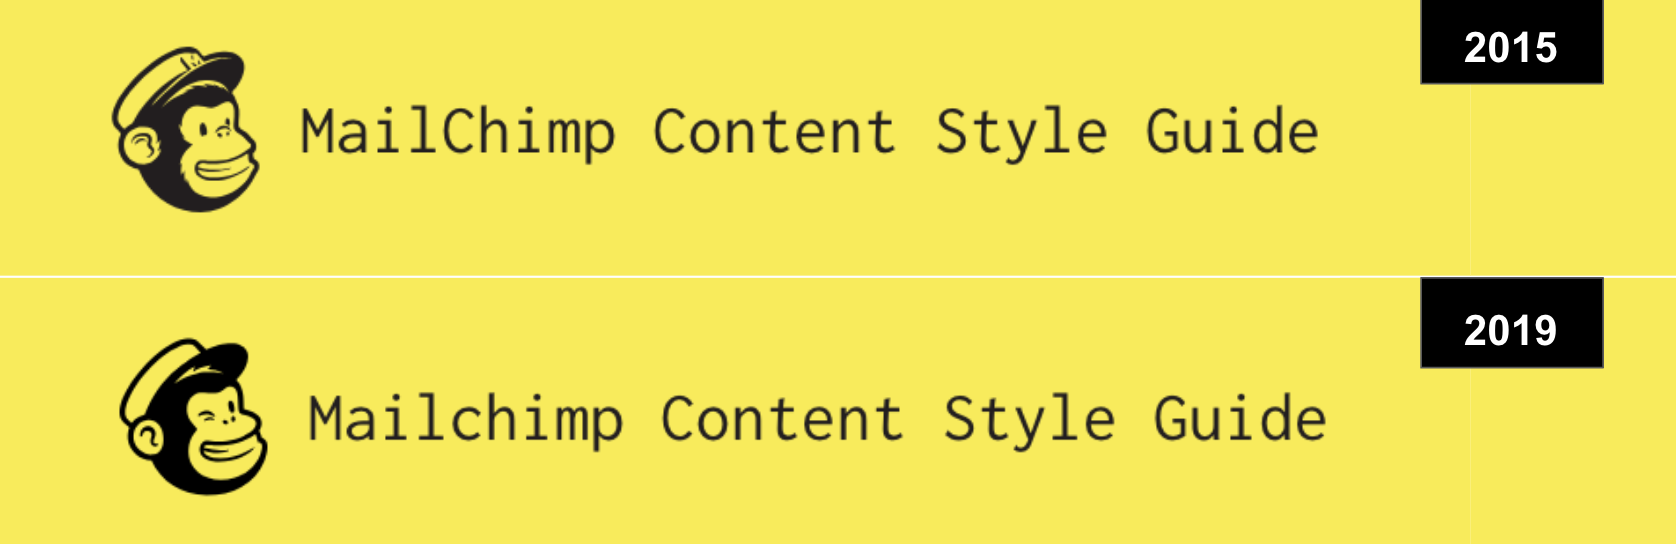 Image showing the 2015 and 2019 Mailchimp Content Style Guide header or comparison